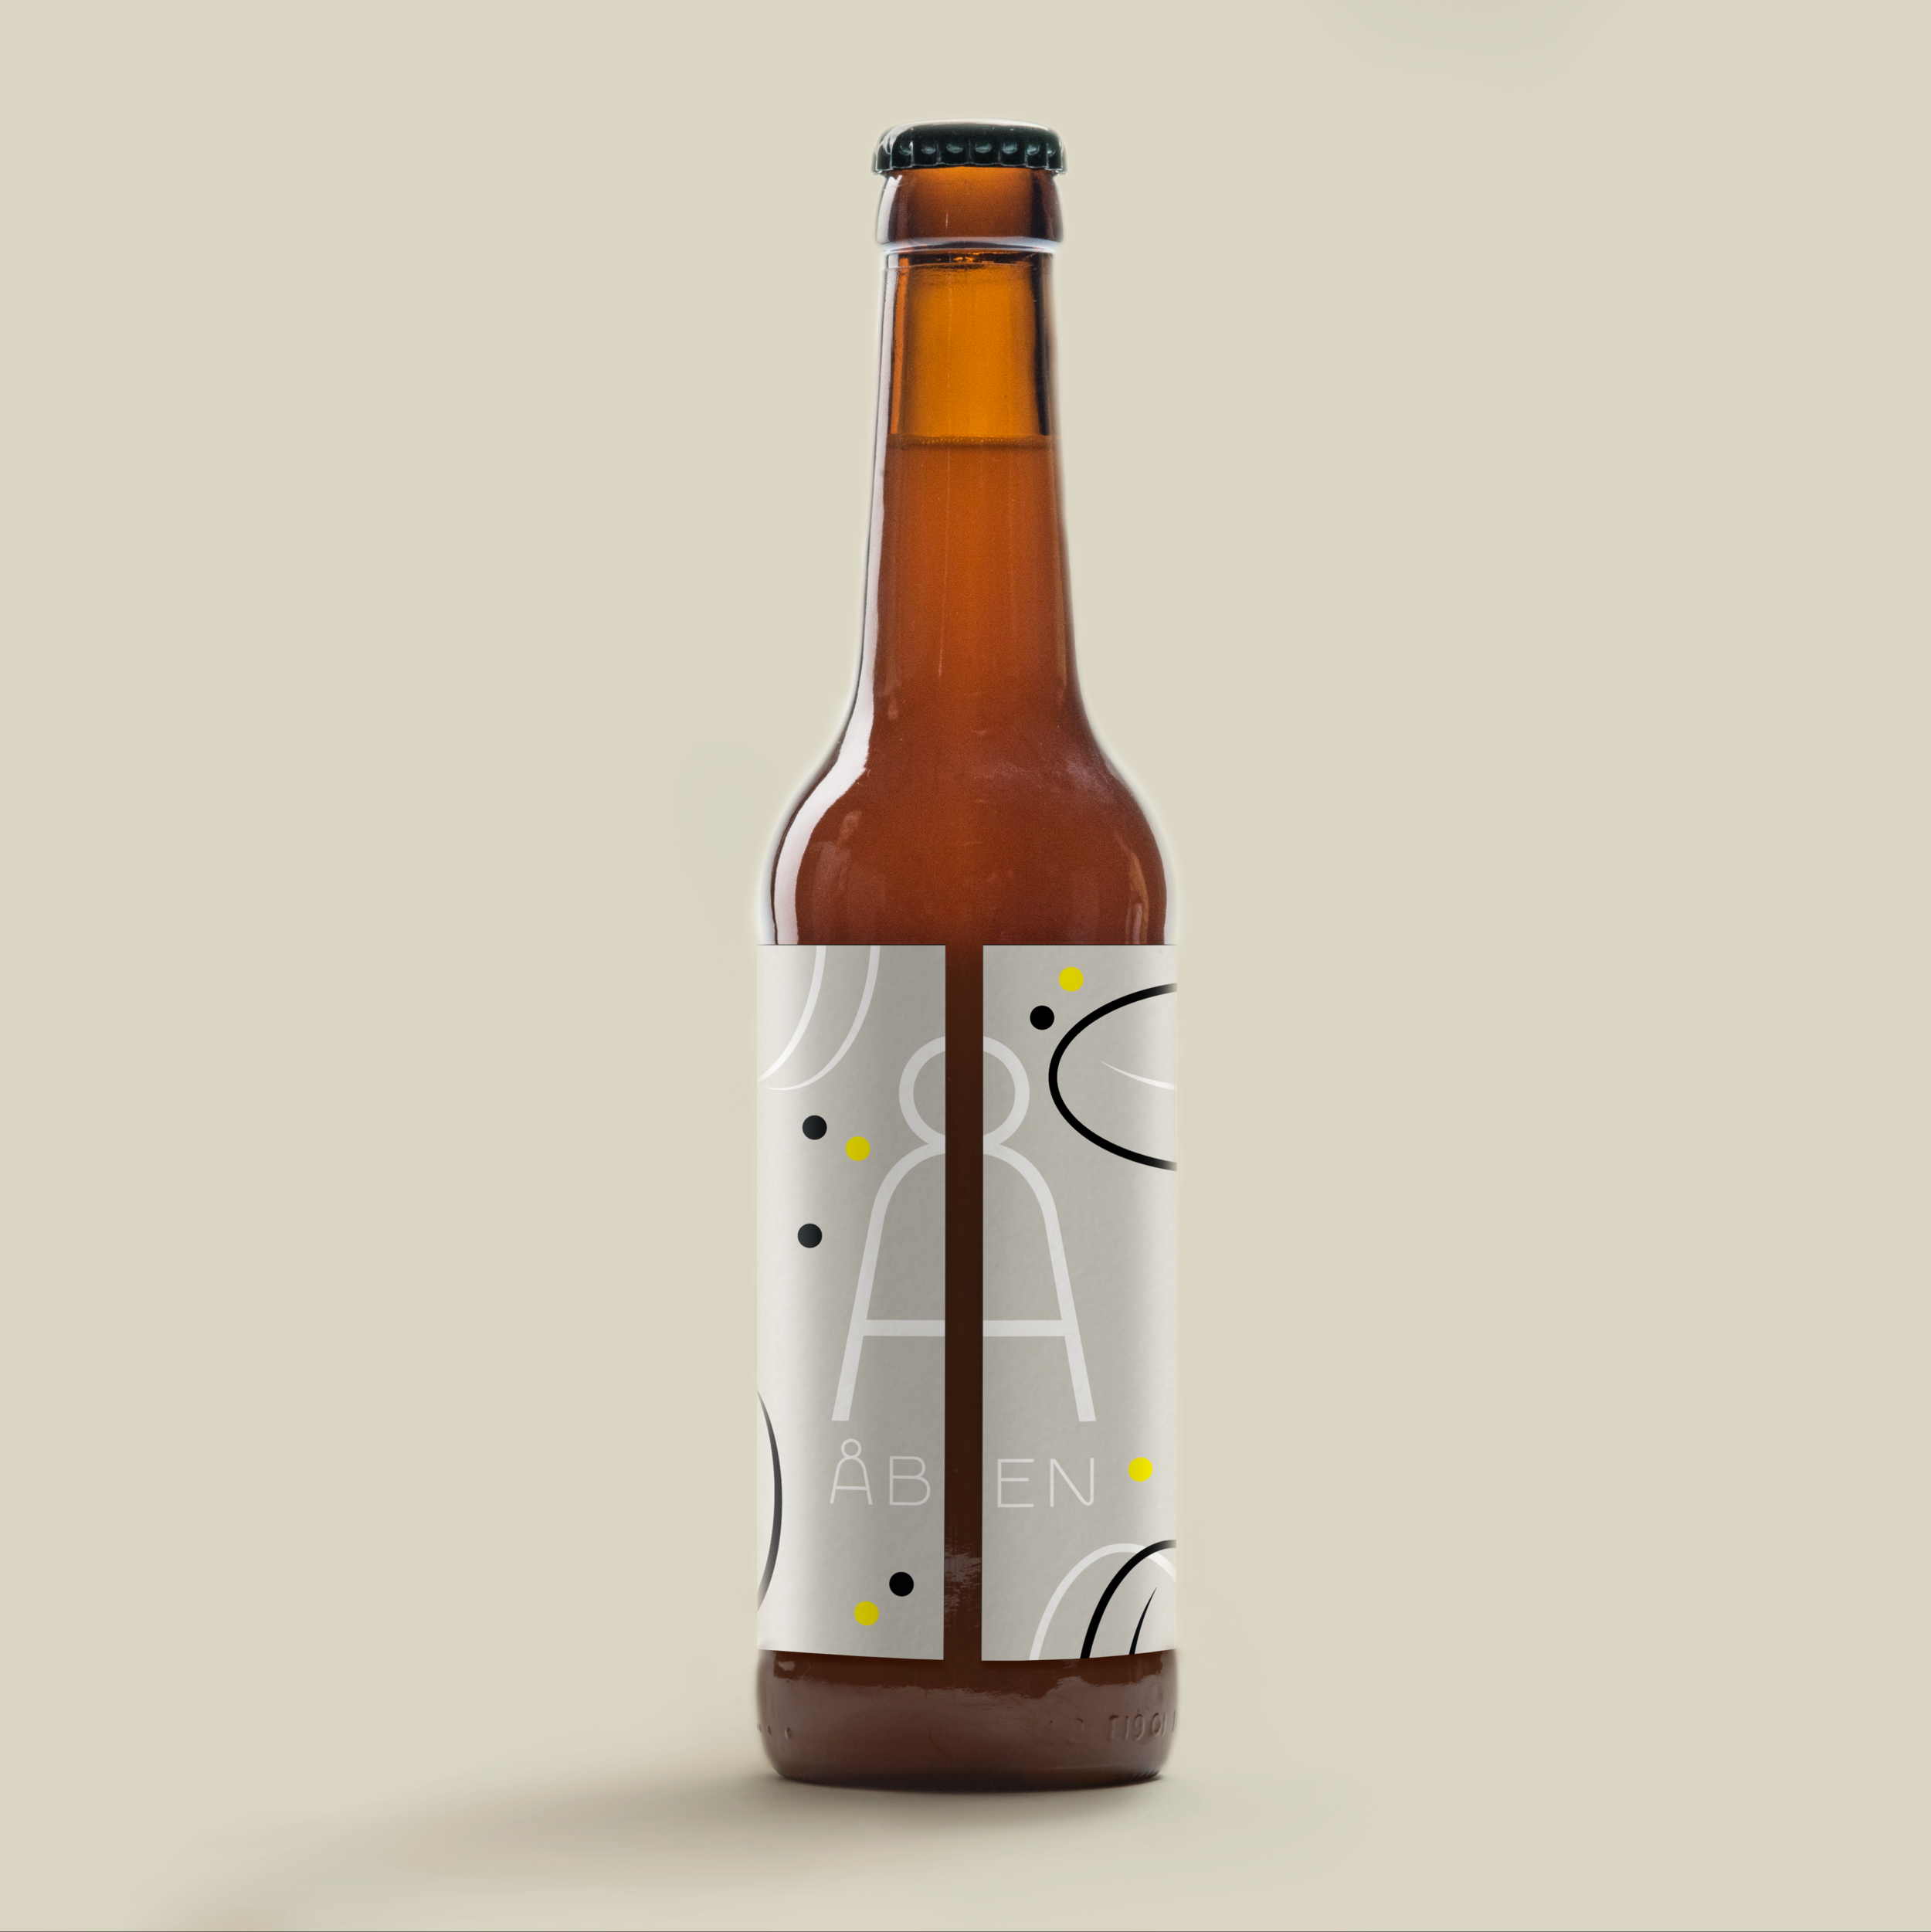 B63  / Belgian Wit Beer / 4.9%   Limitid Edition, 2019   Refreshing and fruity Belgian Wit beer. Made with bitter orange zest, lemon peel and coriander seeds and fermented with WLP400.